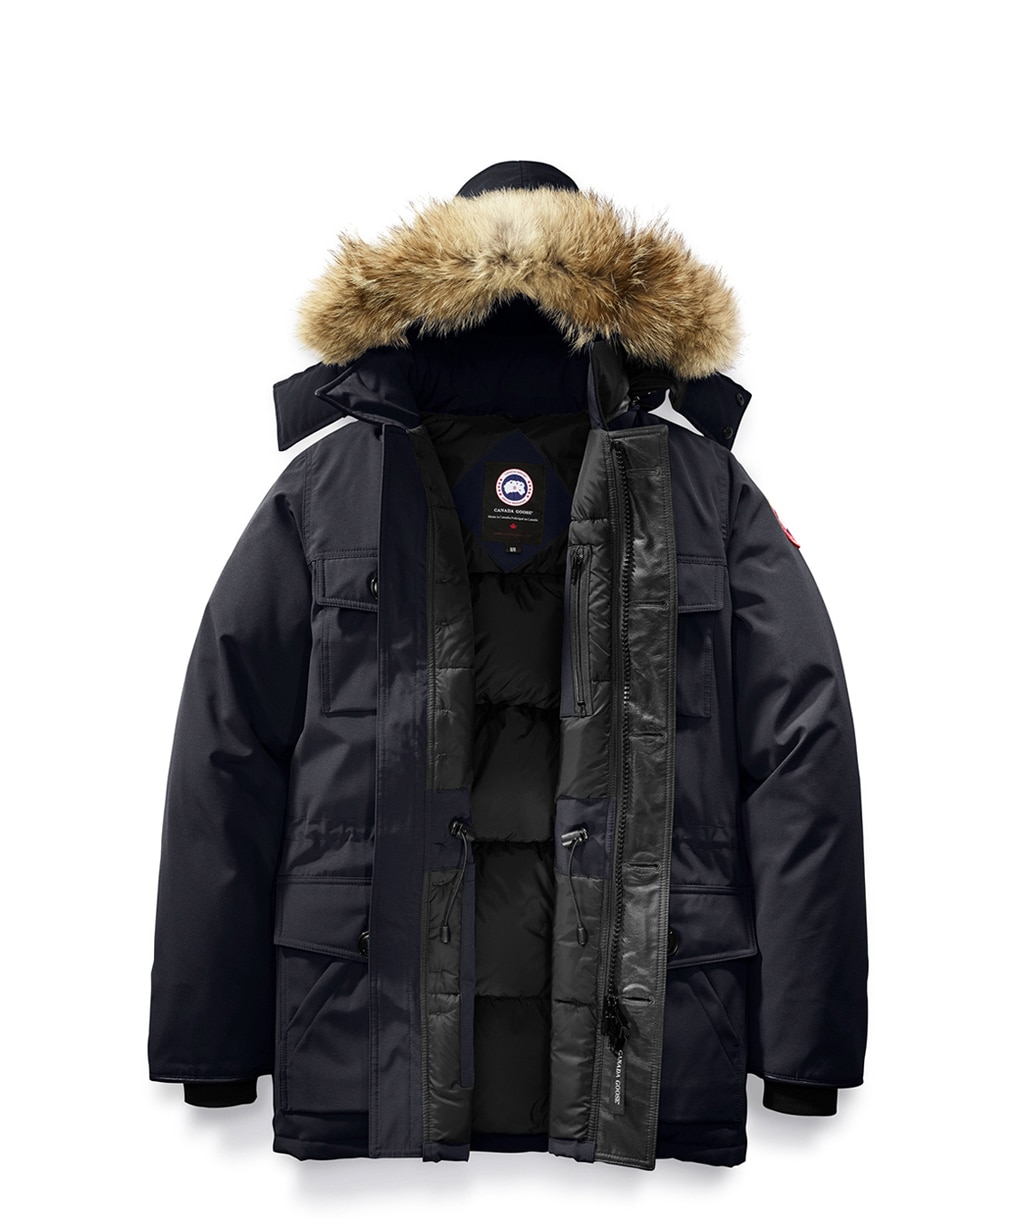 BANFF PARKA FUSION FIT